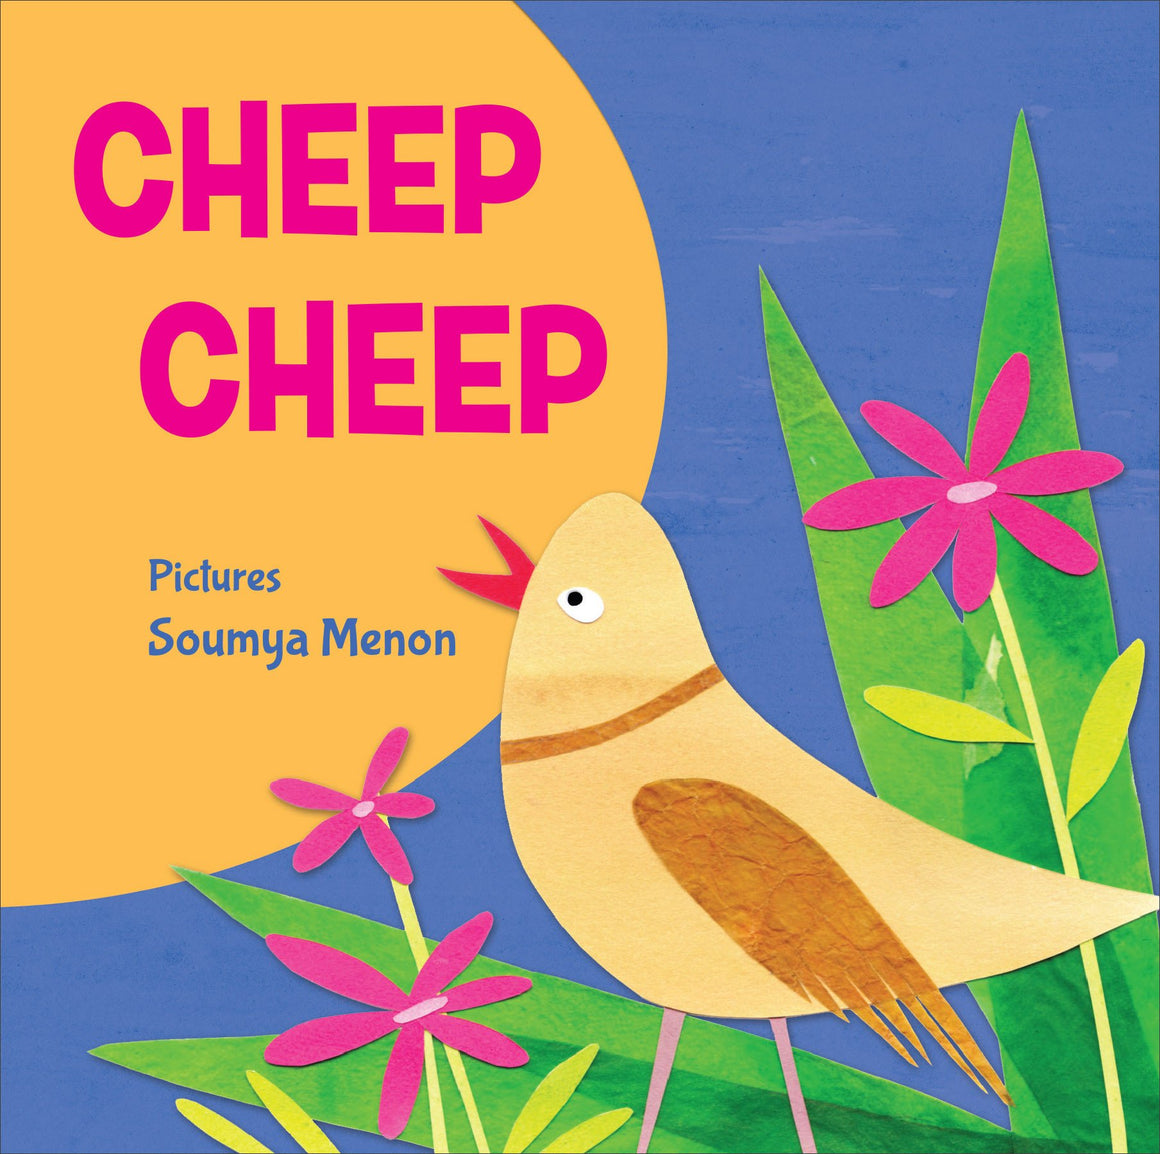 board books for infants